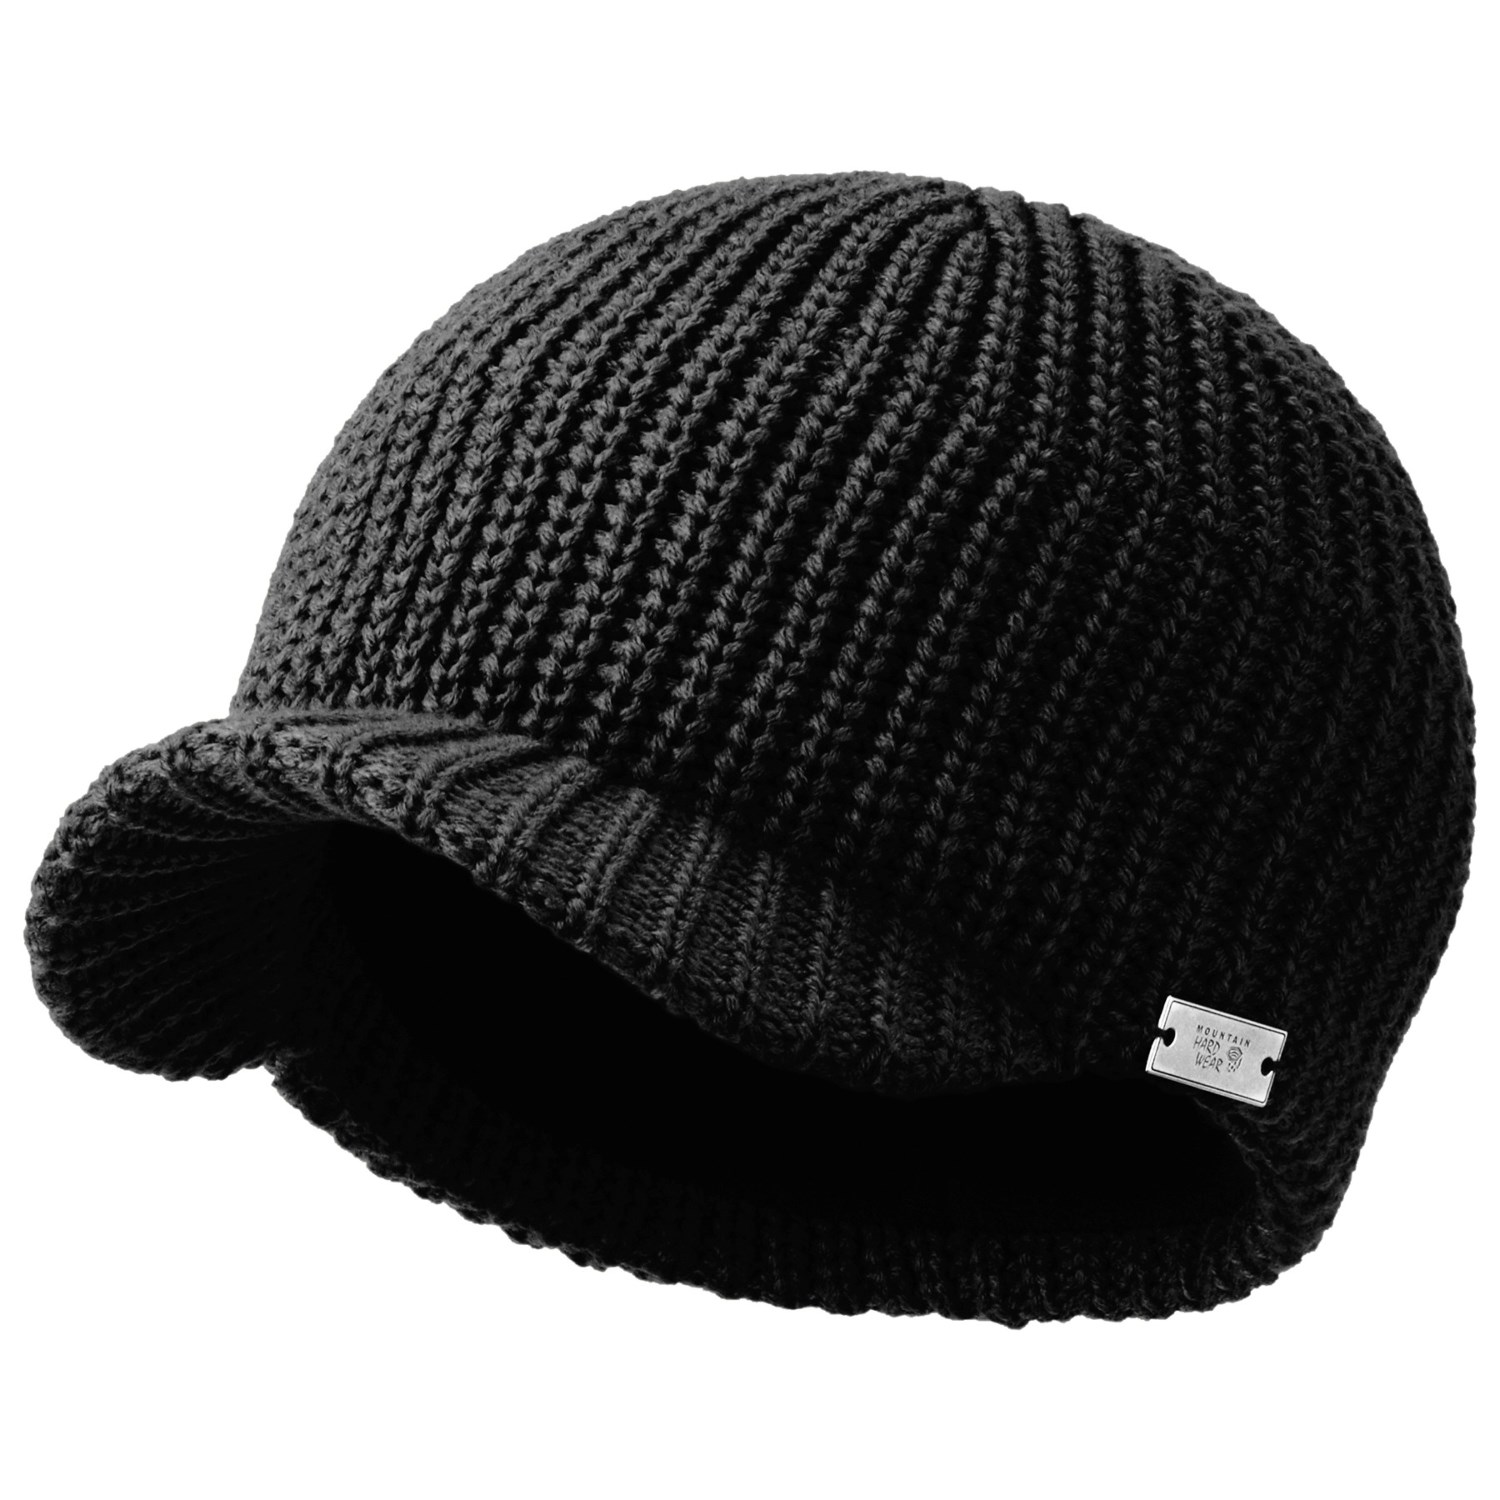 Looking for hats for men in a variety of styles and colors from all your favorite brands? Shop for men's hats at PacSun and enjoy free shipping on all orders over $50! Hats & Beanies. Dad & Baseball Hats Snapback Hats Trucker Hats Brimmed & Bucket Hats adidas Washed Black Strapback Dad Hat $ Obey Jumble Bar III Strapback Dad Hat.